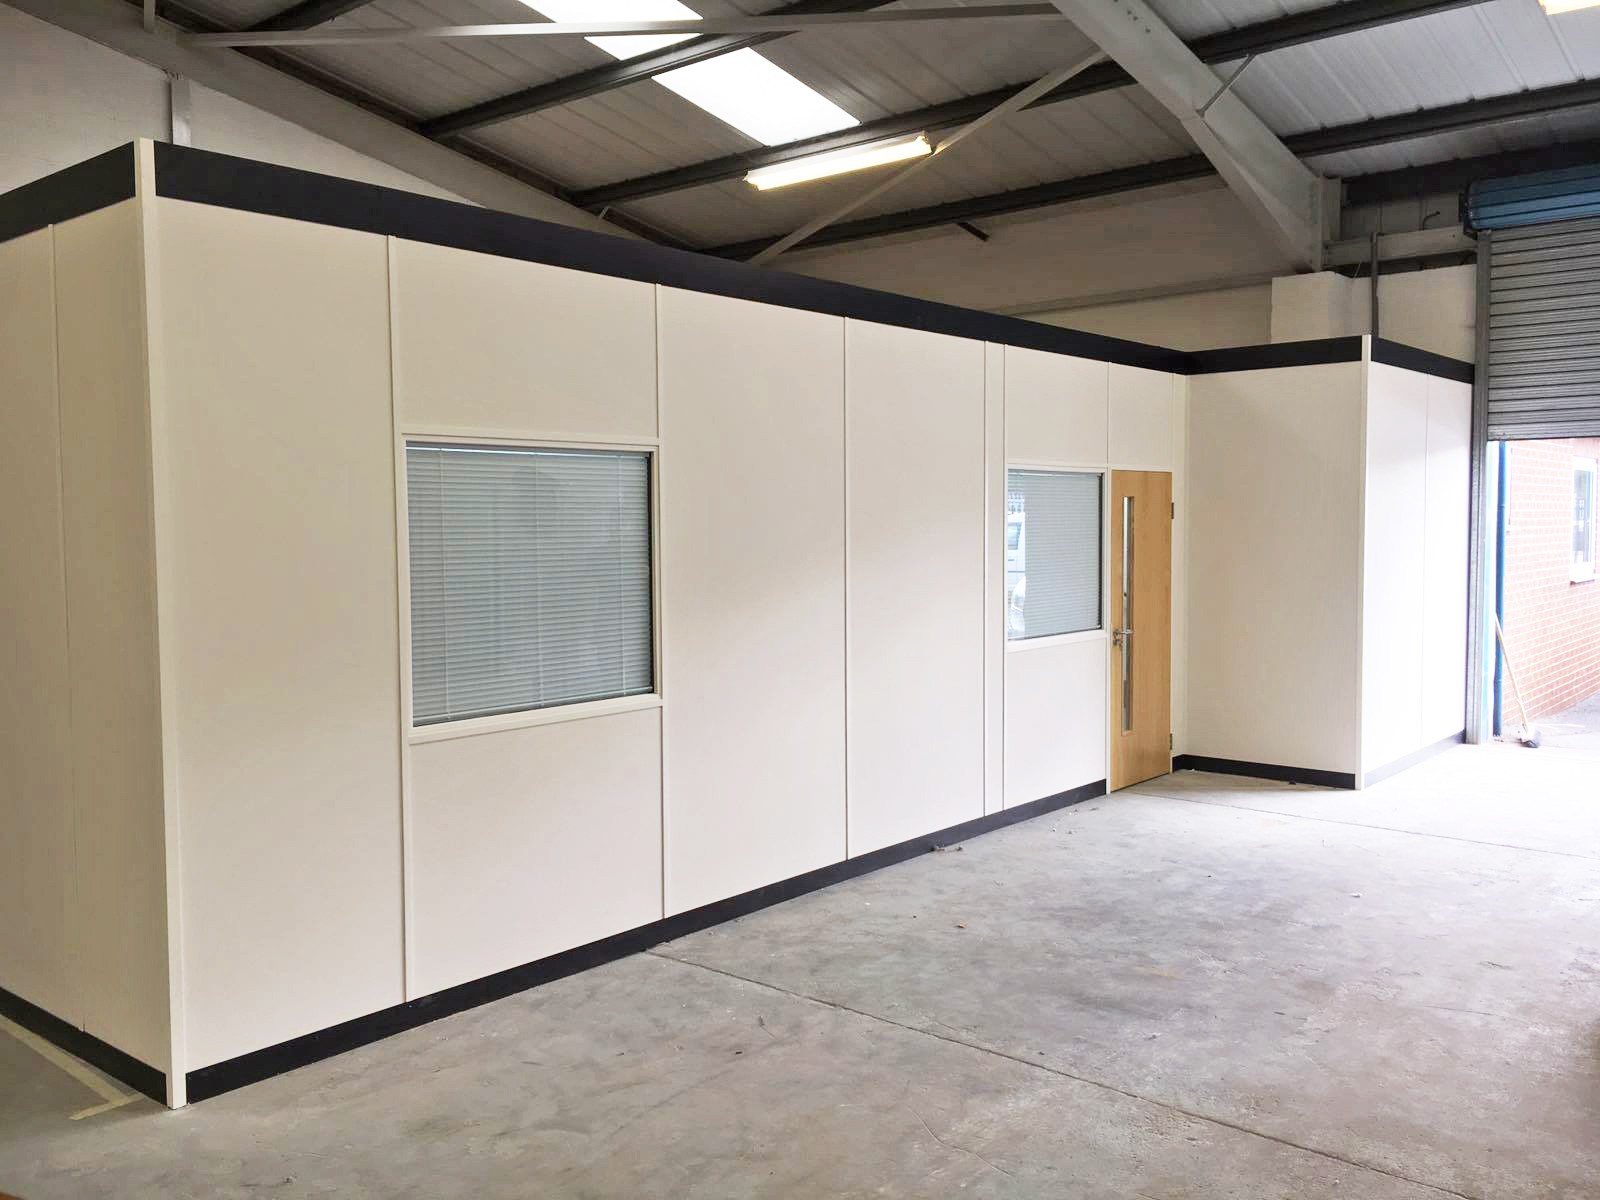 case study  warehouse office partitions